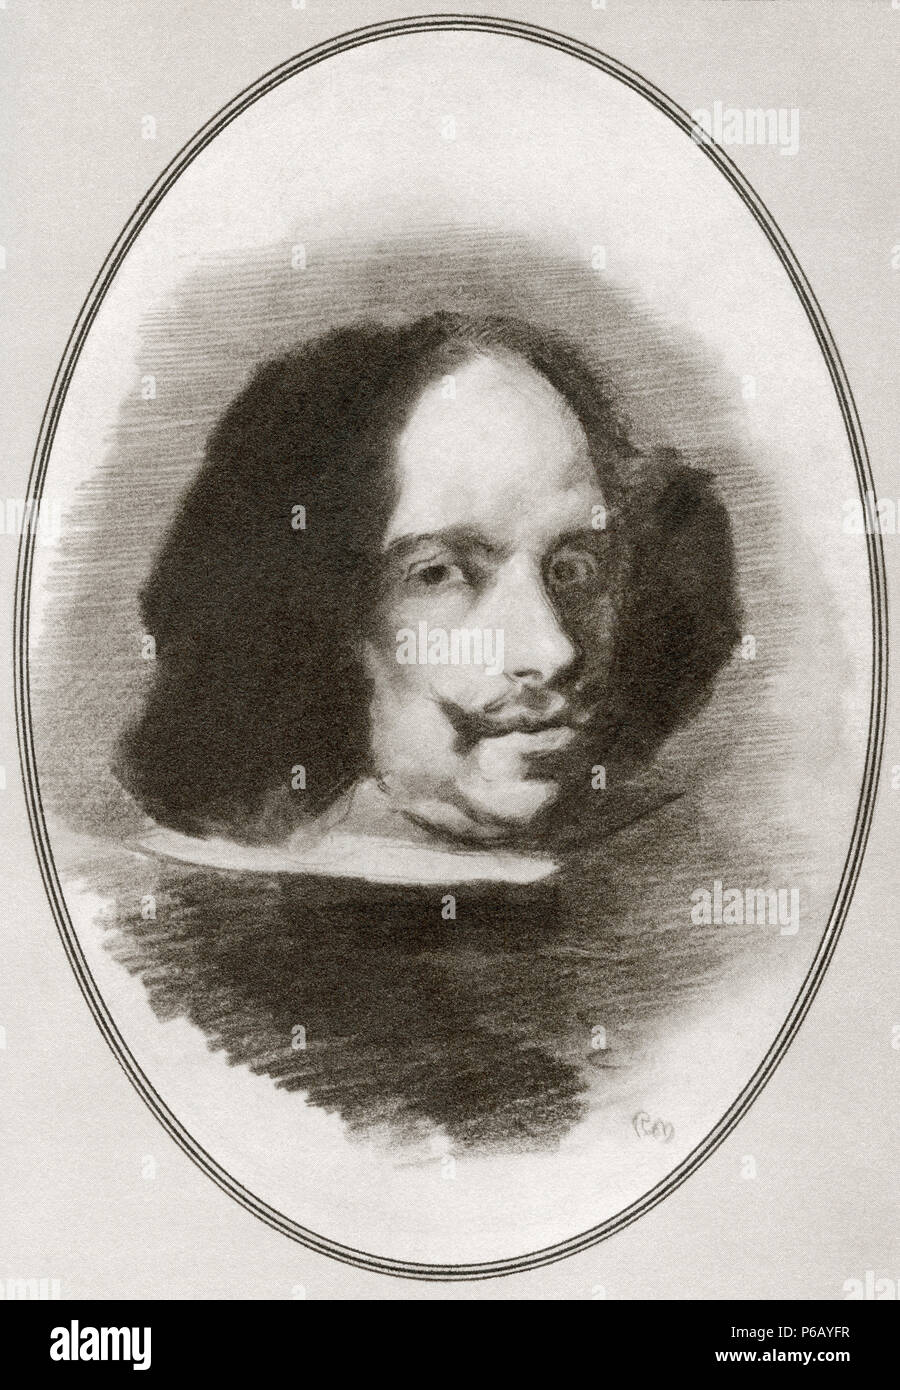 Diego Rodríguez de Silva y Velázquez, 1599 – 1660. Spanish painter.  Illustration by Gordon Ross, American artist and illustrator (1873-1946), from Living Biographies of Great Painters. - Stock Image